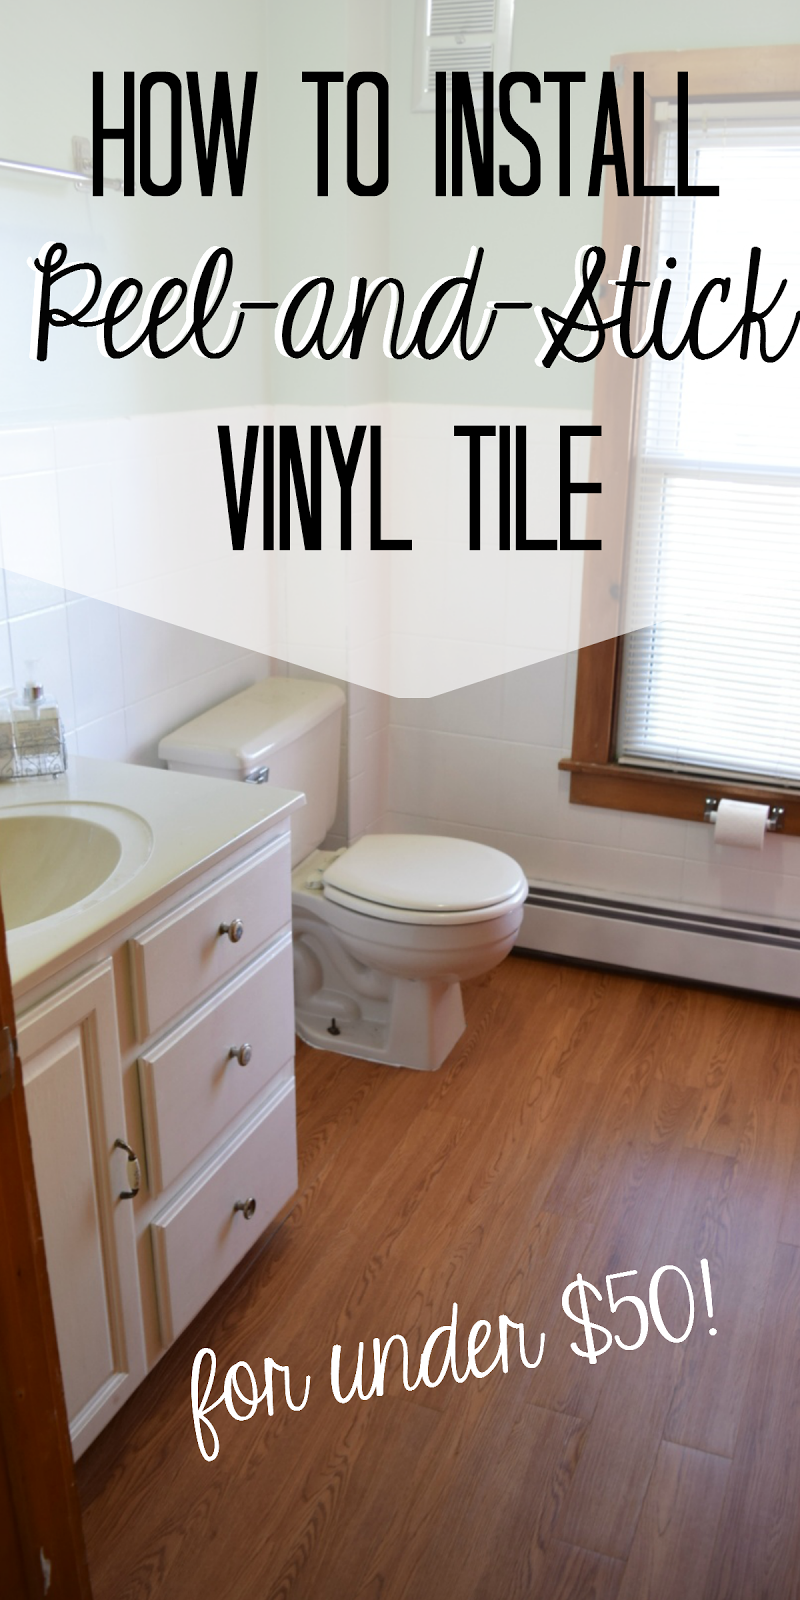 DIY Peel And Stick Vinyl Plank Floors   How To DIY Your Floors For Less  Than $50! Peel And Stick Wood Floors. Peel And Stick Bathroom Floor.